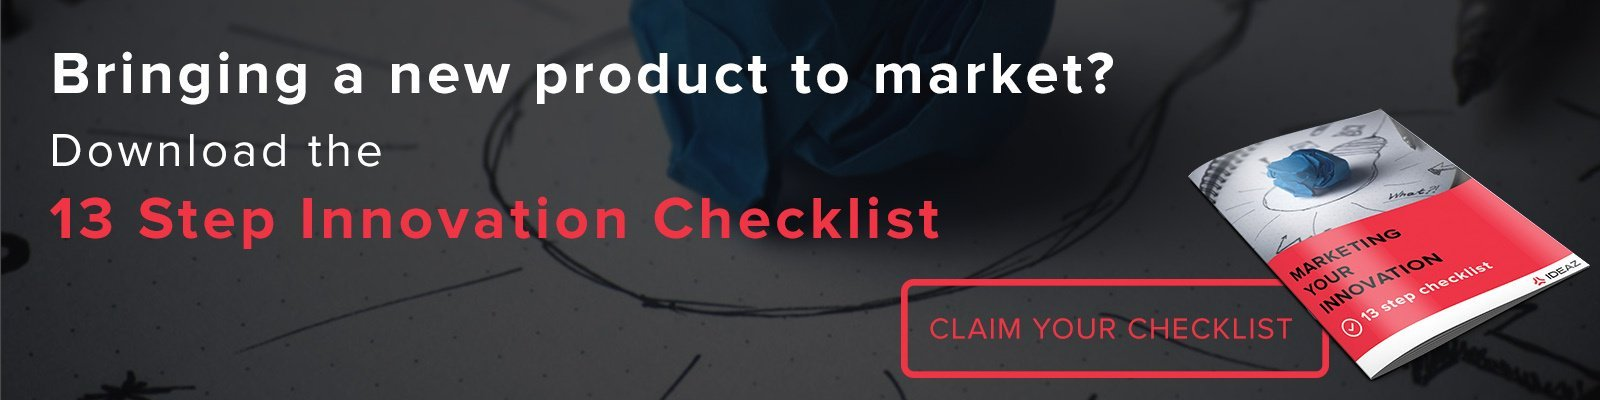 product innovation checklist